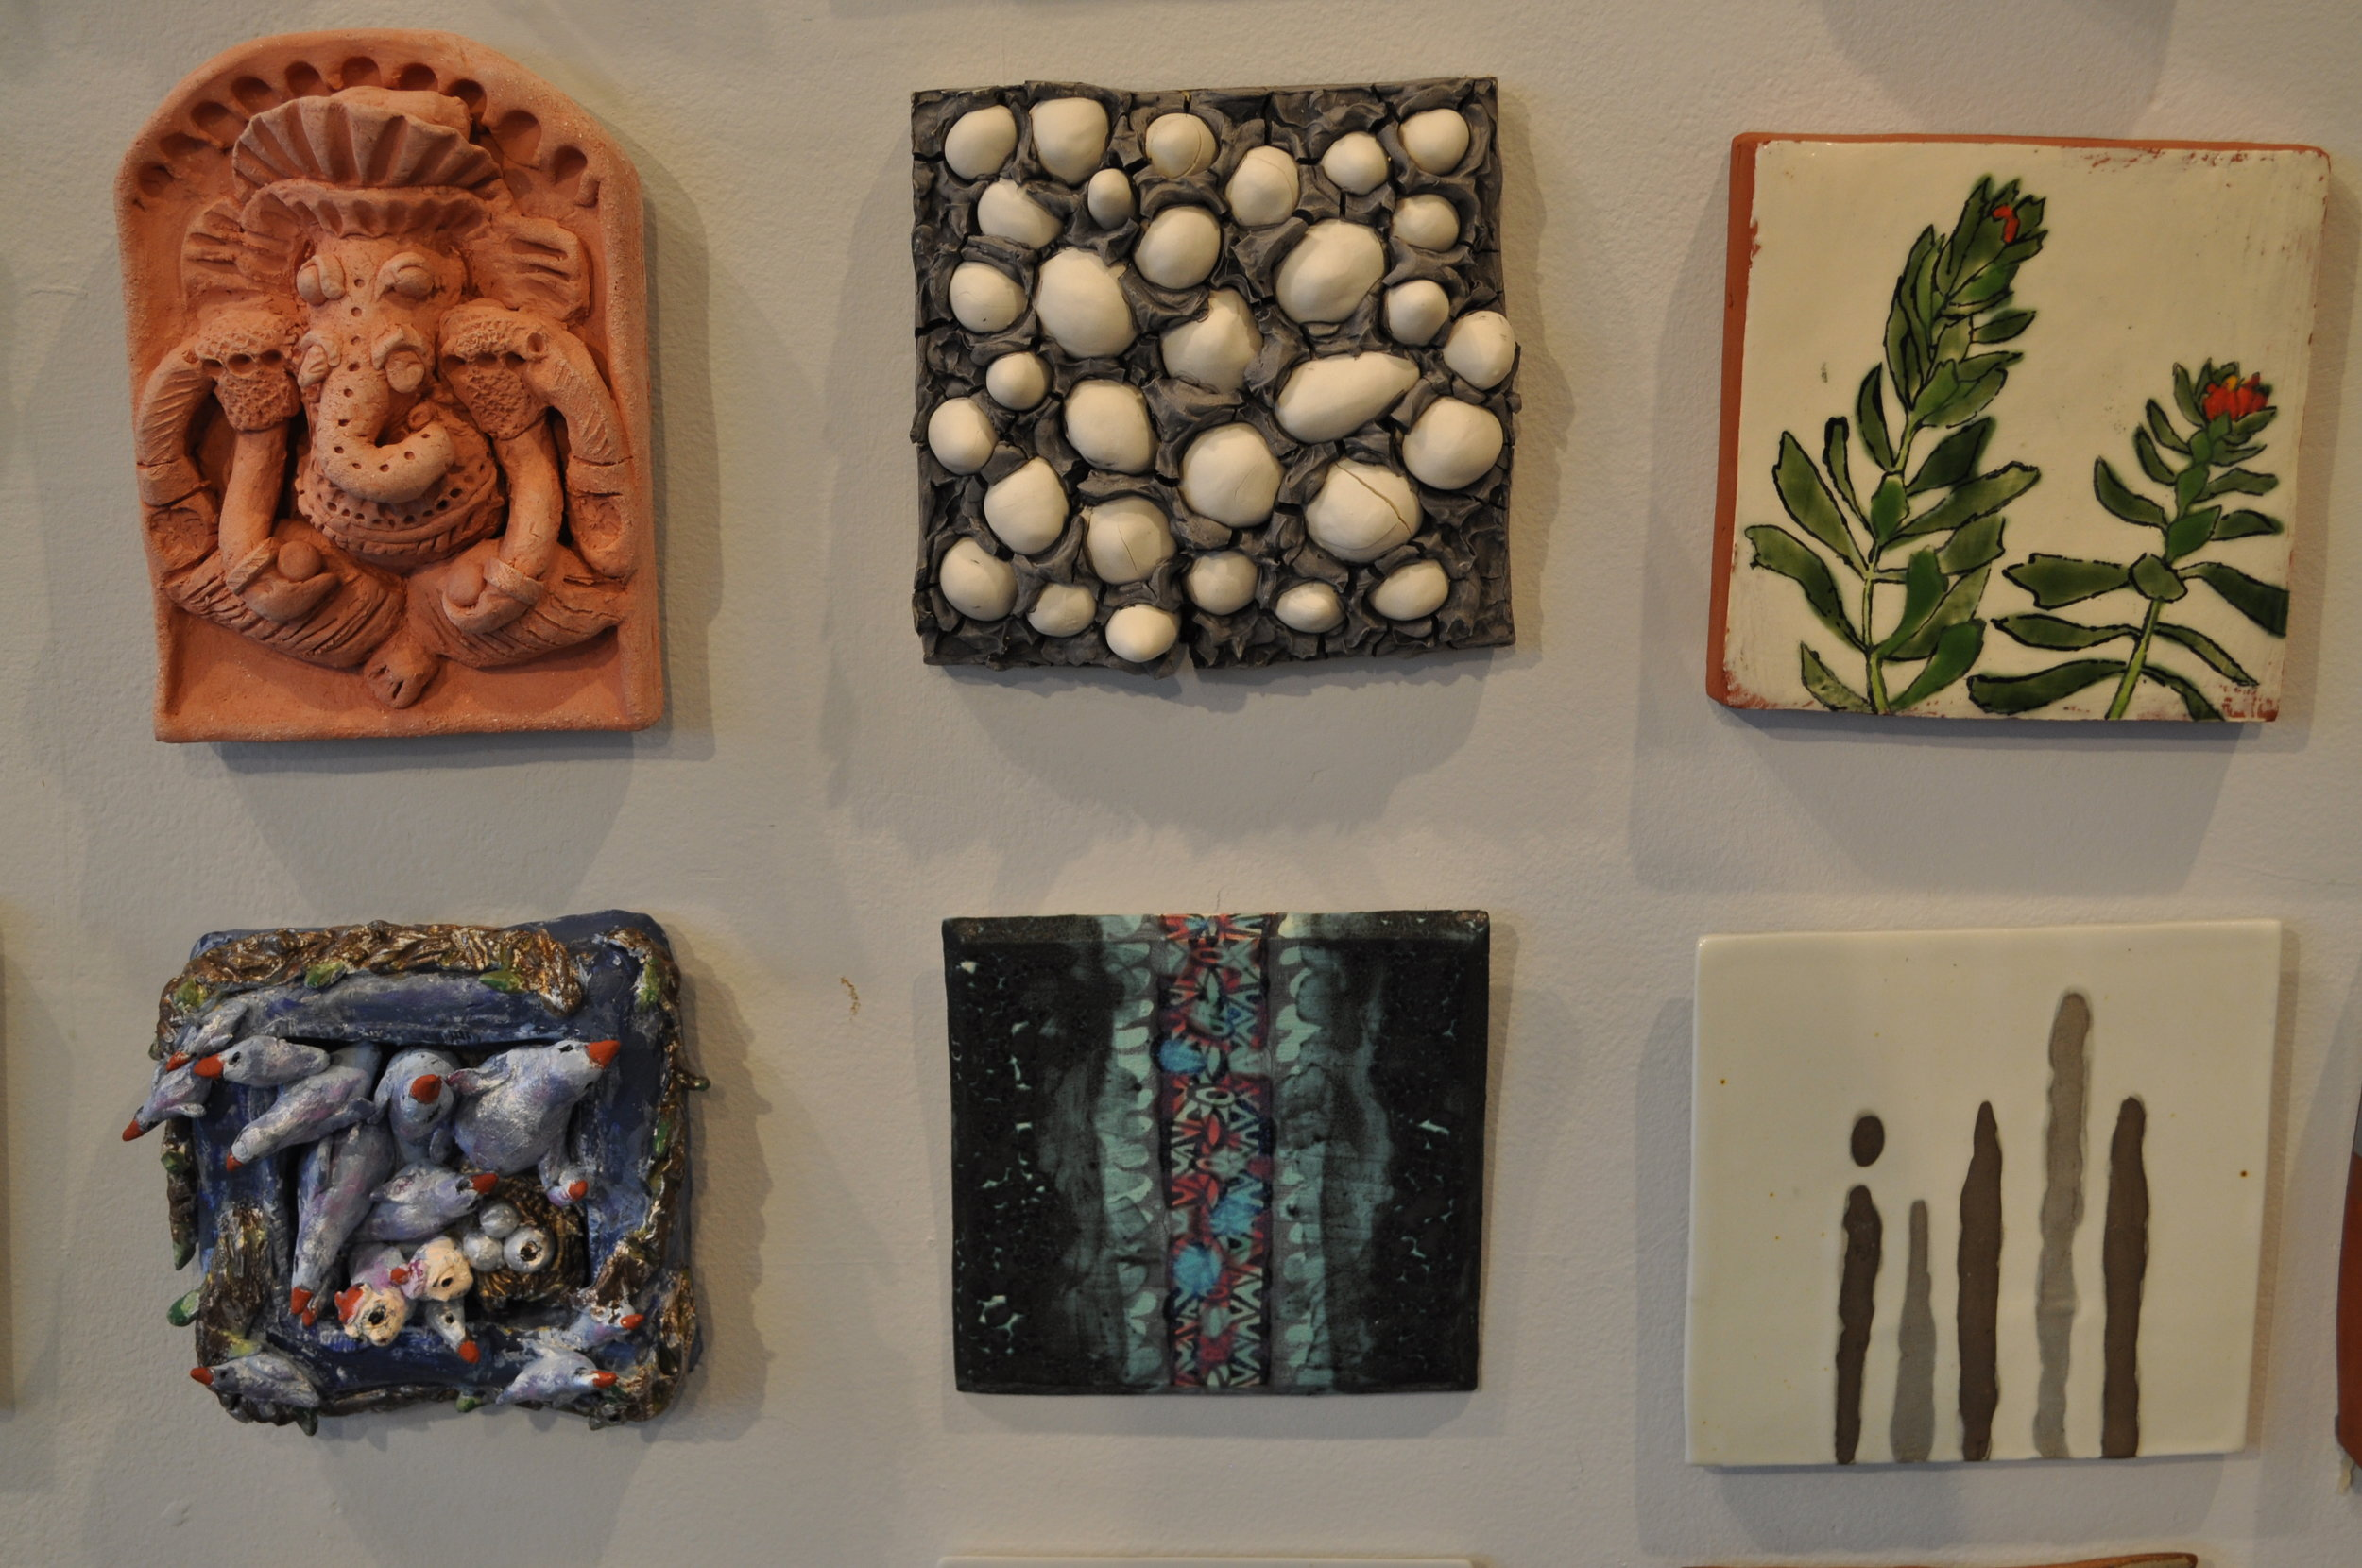 1.  Natalie Kase,  Untitled,  $65  2.  Tabbatha Henry,  Earth $125   3.  Ursula Hargens, Small Tile (Leedy's Roseroot) $100  4 .Sue Anne Heller  Birds with Human Faces  $30  5.  Kelley Donahue  Dystopic Beauty  $100  6. Dalia Berman,  Untitled $65